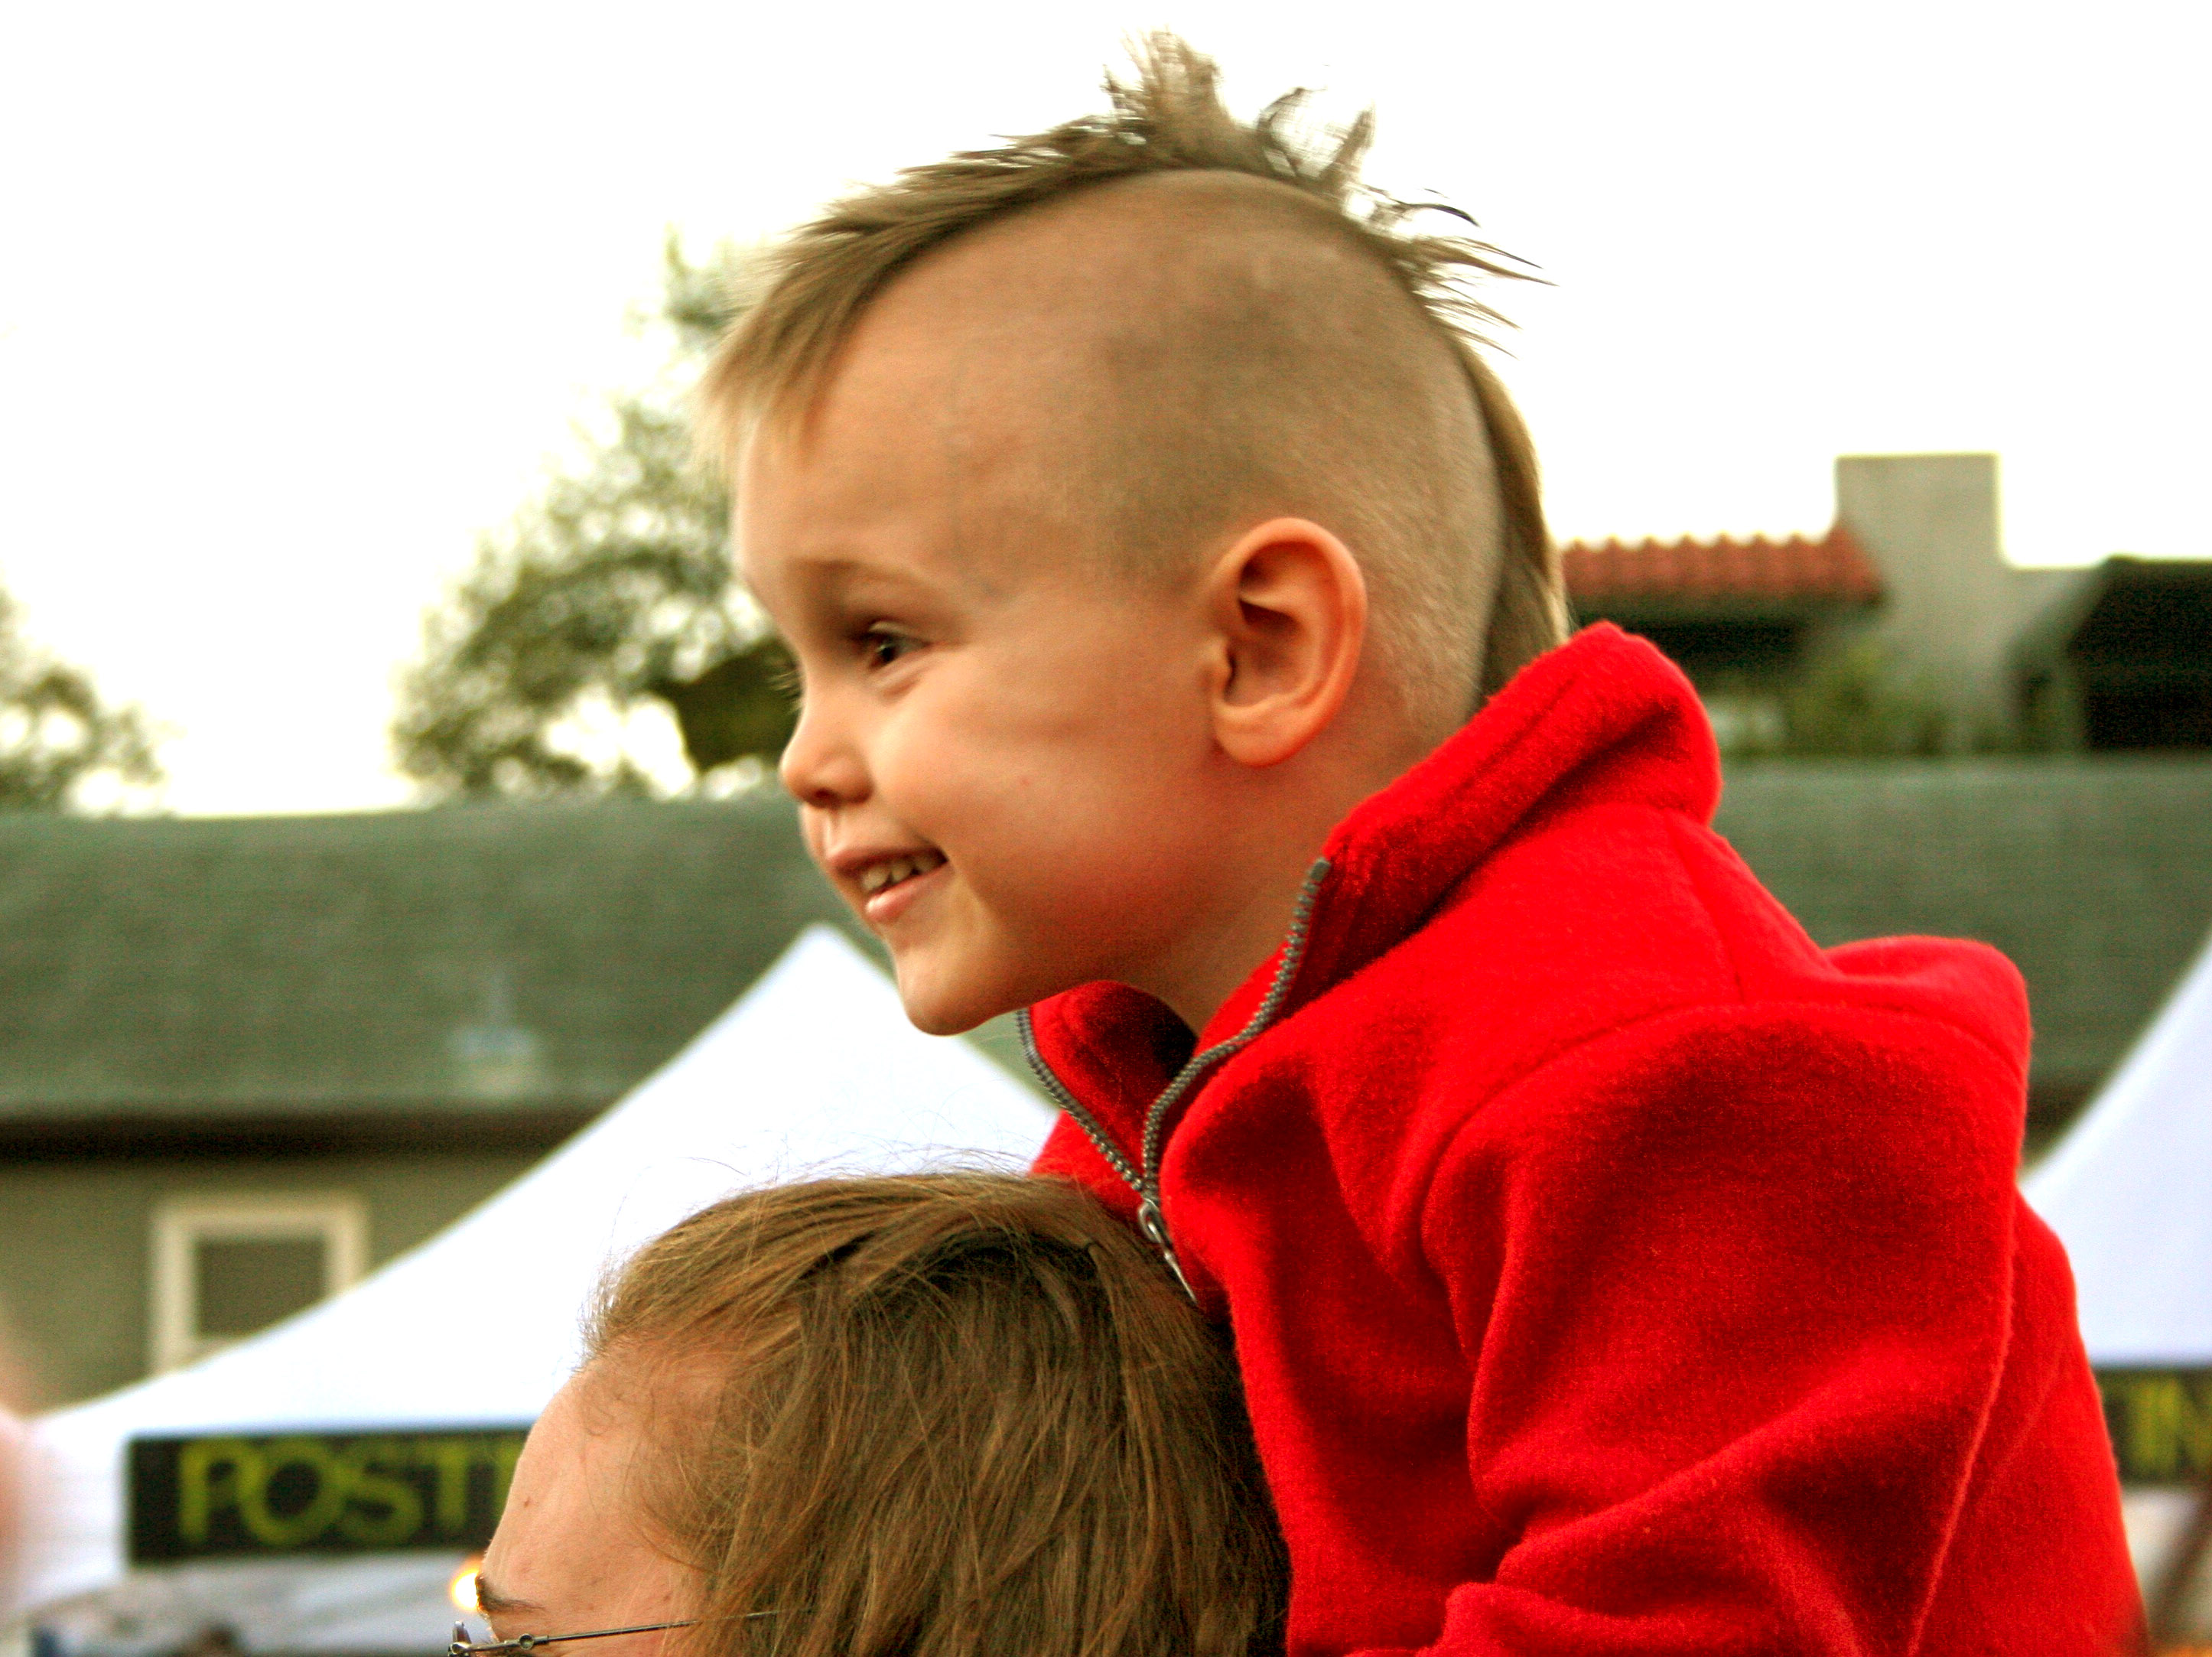 Superb Mohawk Hairstyle For Toddlers 72702 Oh Hell Yeah I Hope Short Hairstyles Gunalazisus